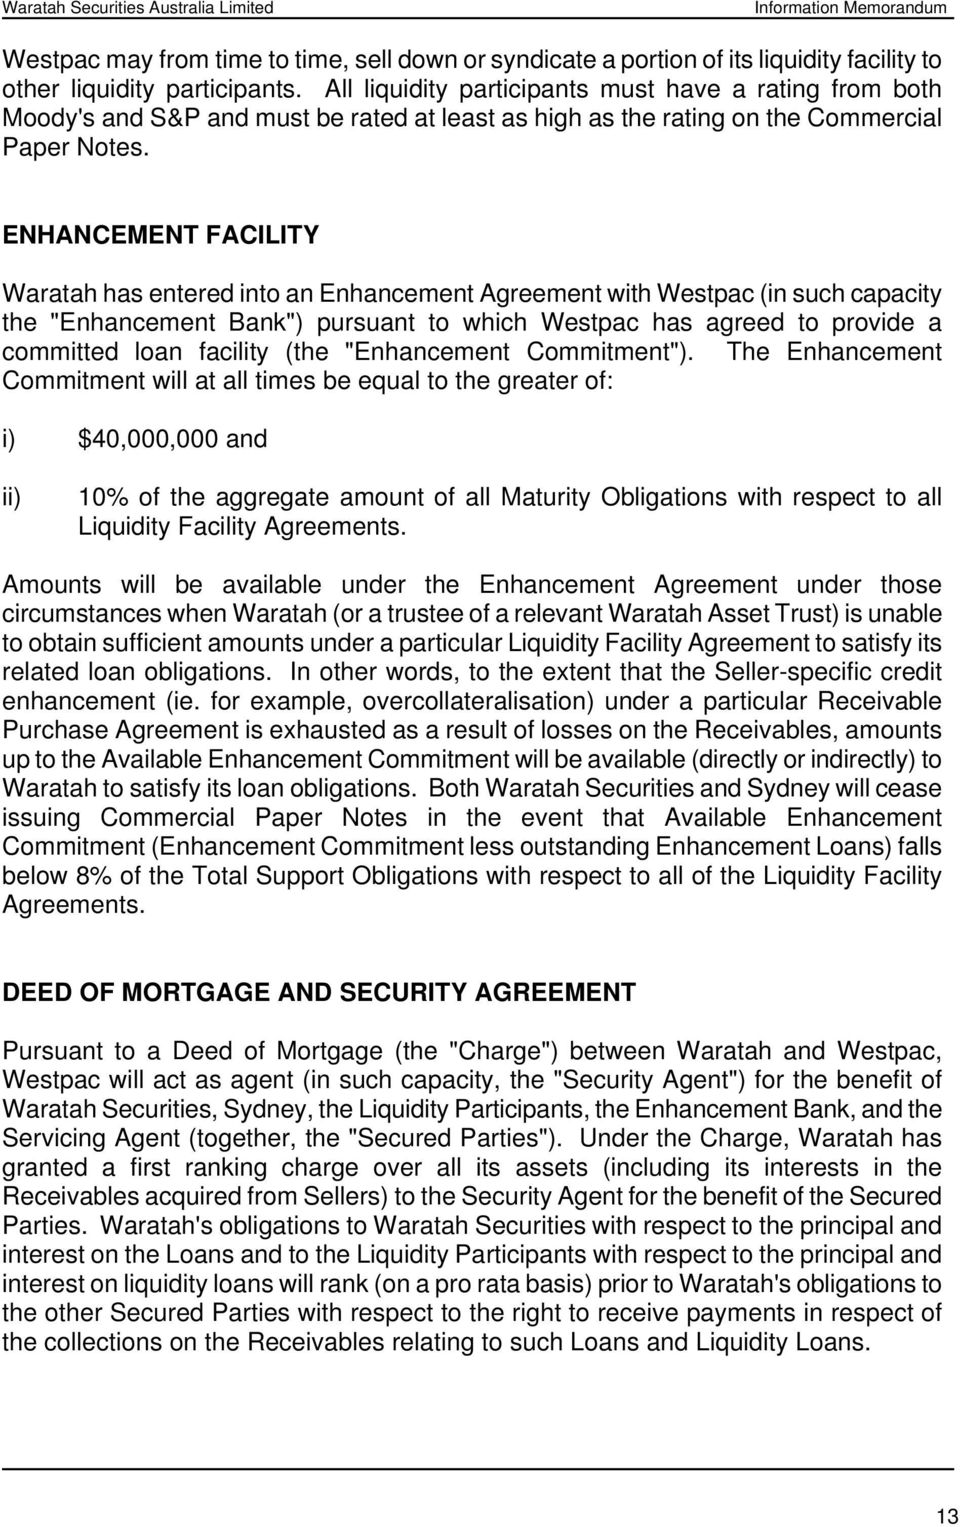 "ENHANCEMENT FACILITY Waratah has entered into an Enhancement Agreement with Westpac (in such capacity the ""Enhancement Bank"") pursuant to which Westpac has agreed to provide a committed loan facility"